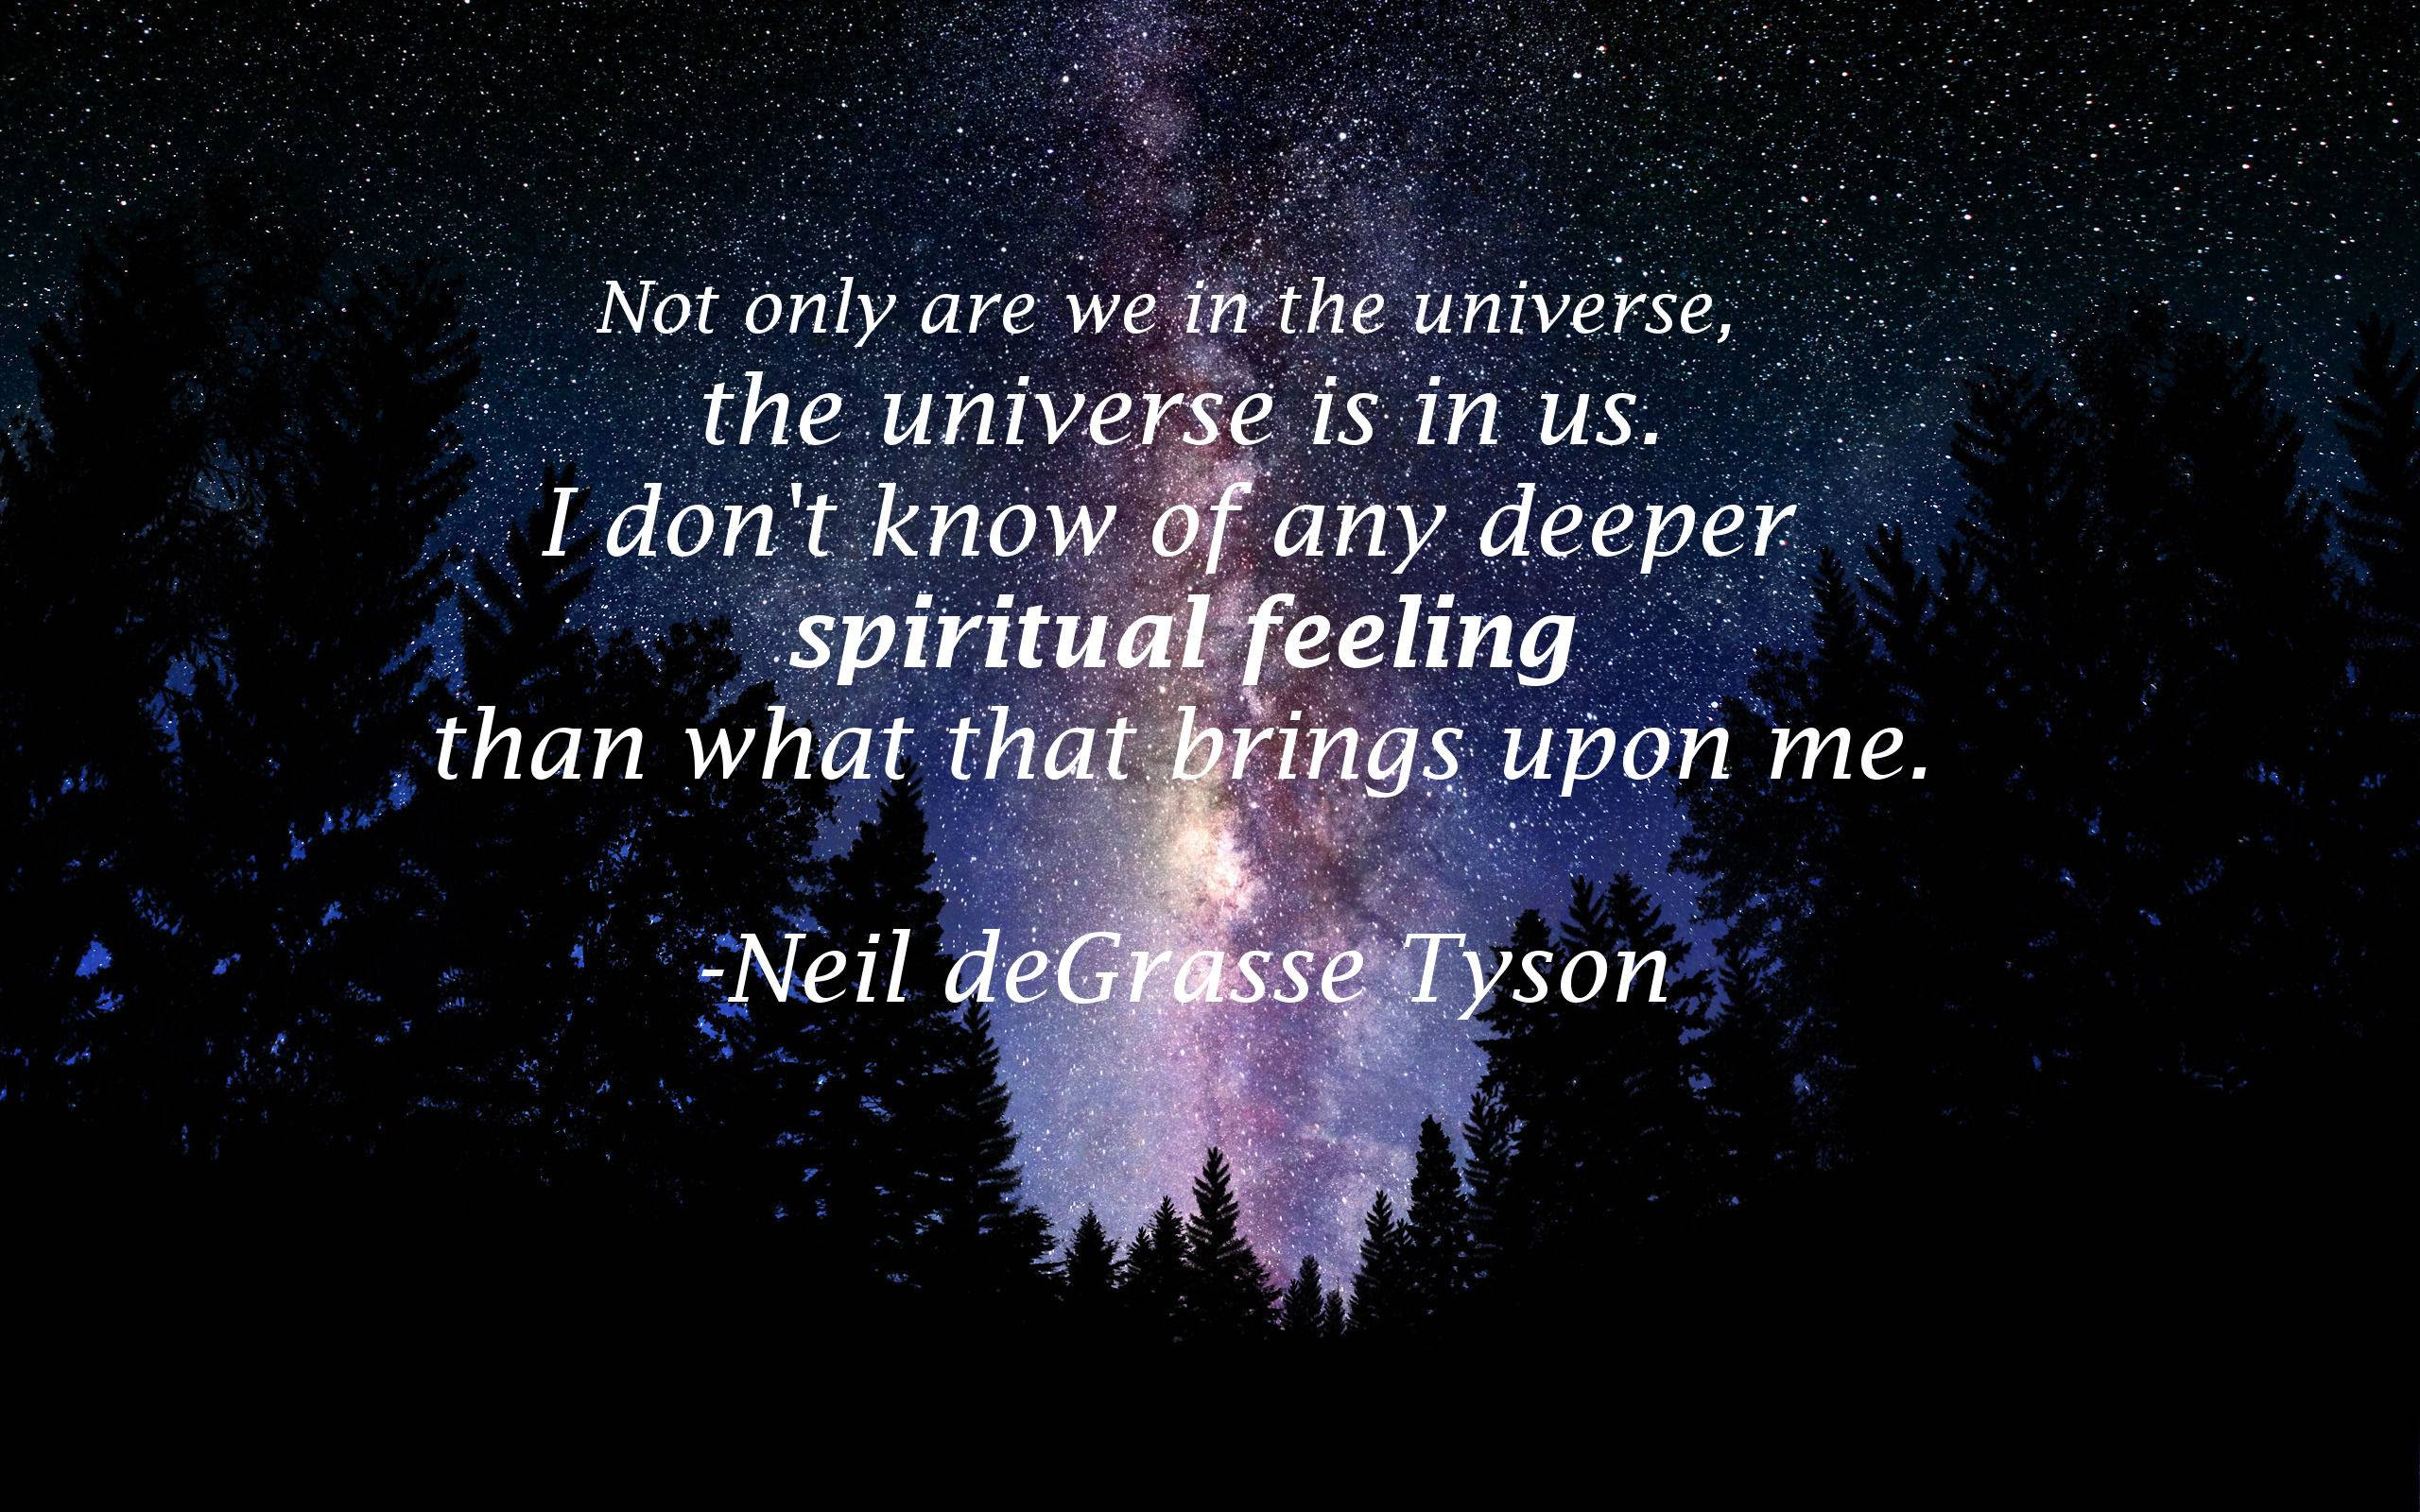 Neil Degrasse Tyson St Cathys Blog